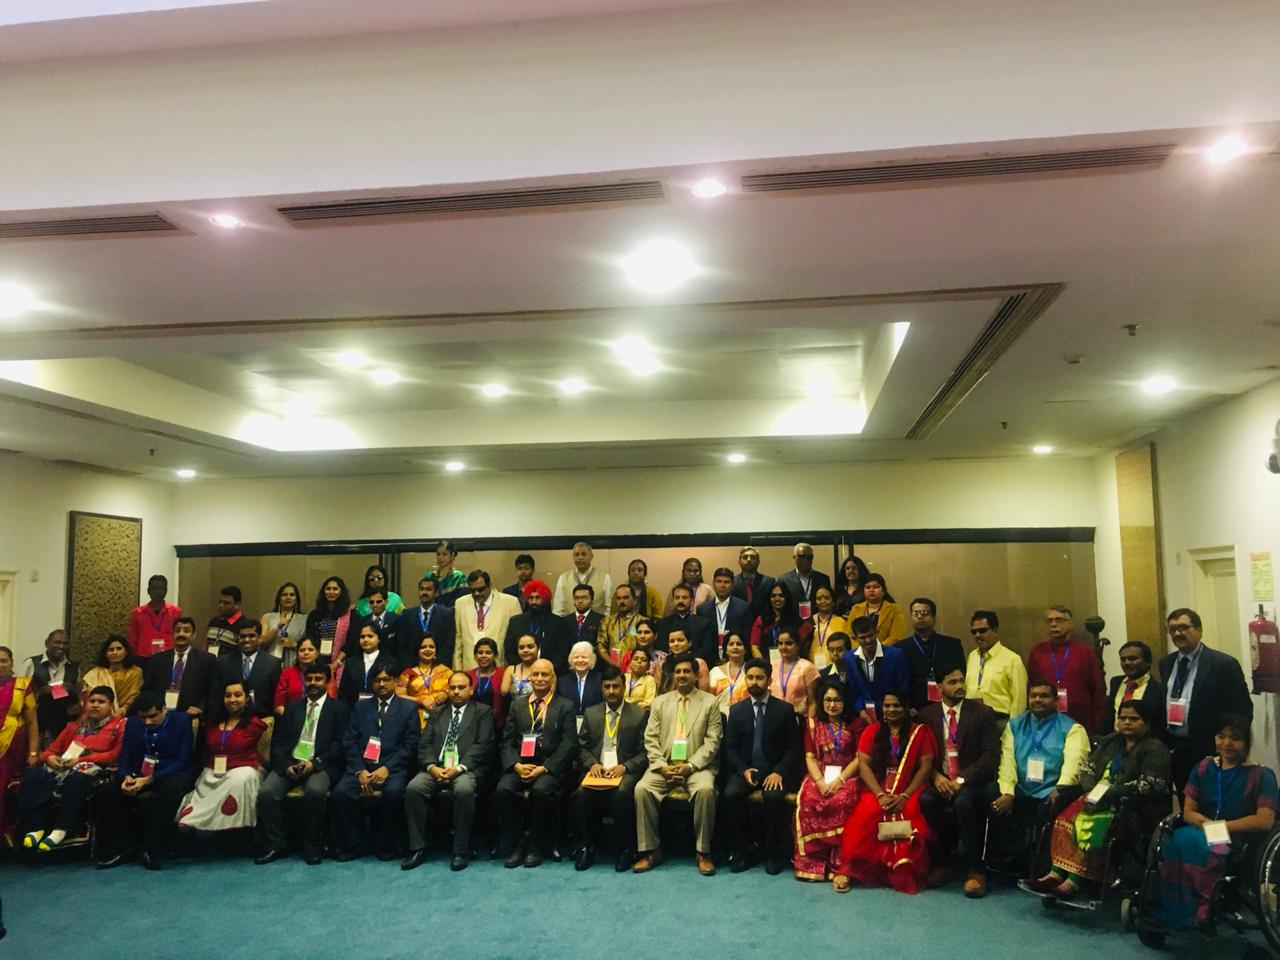 group photo of all winners of the national award for the empowerment of persons with disabilities 2019 with the vice president of india. nidhi goyal in the second last row